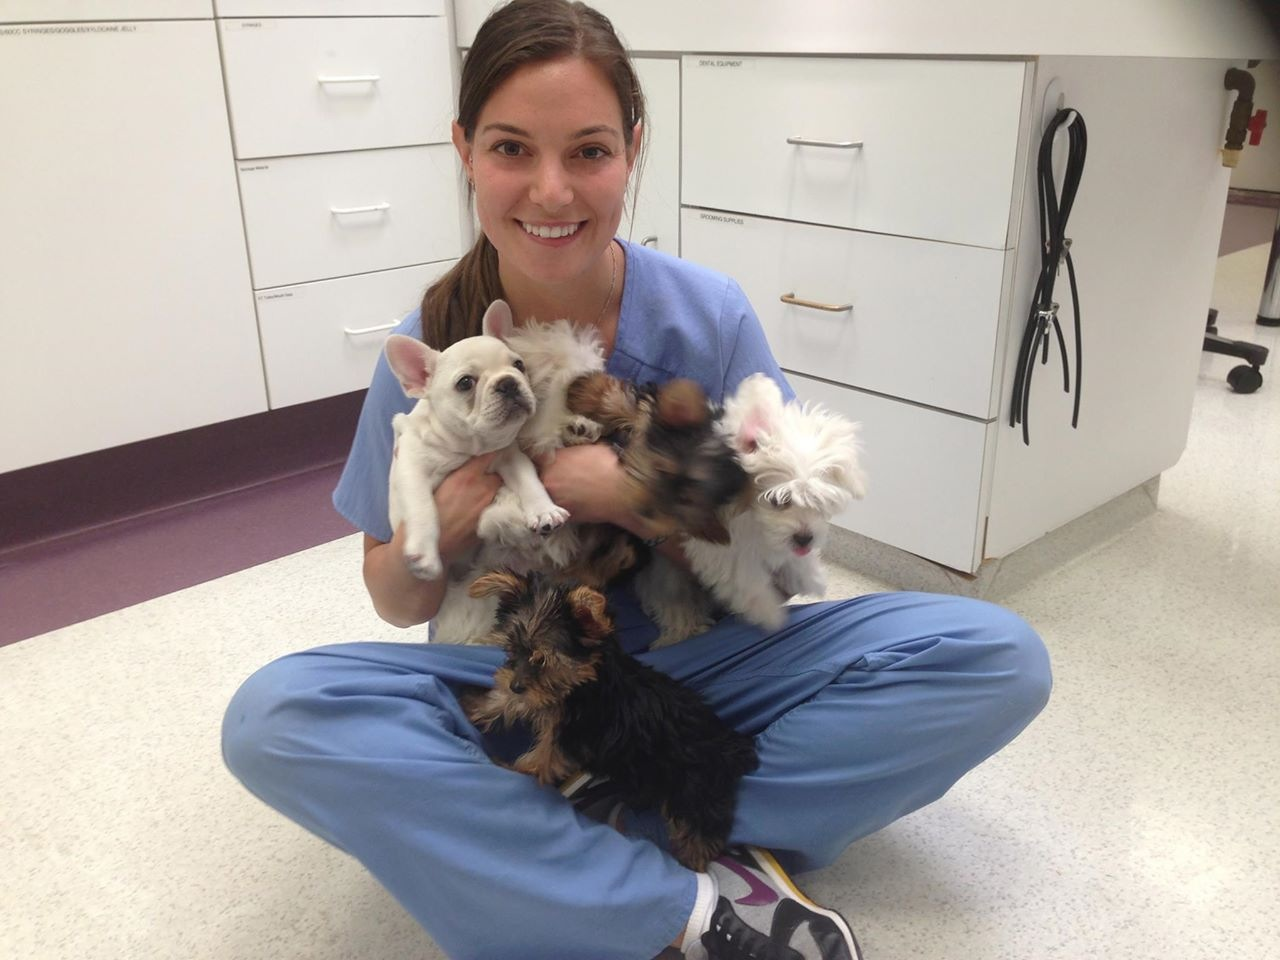 veterinary technicians Search careerbuilder for veterinary technician jobs and browse our platform apply now for jobs that are hiring near you.